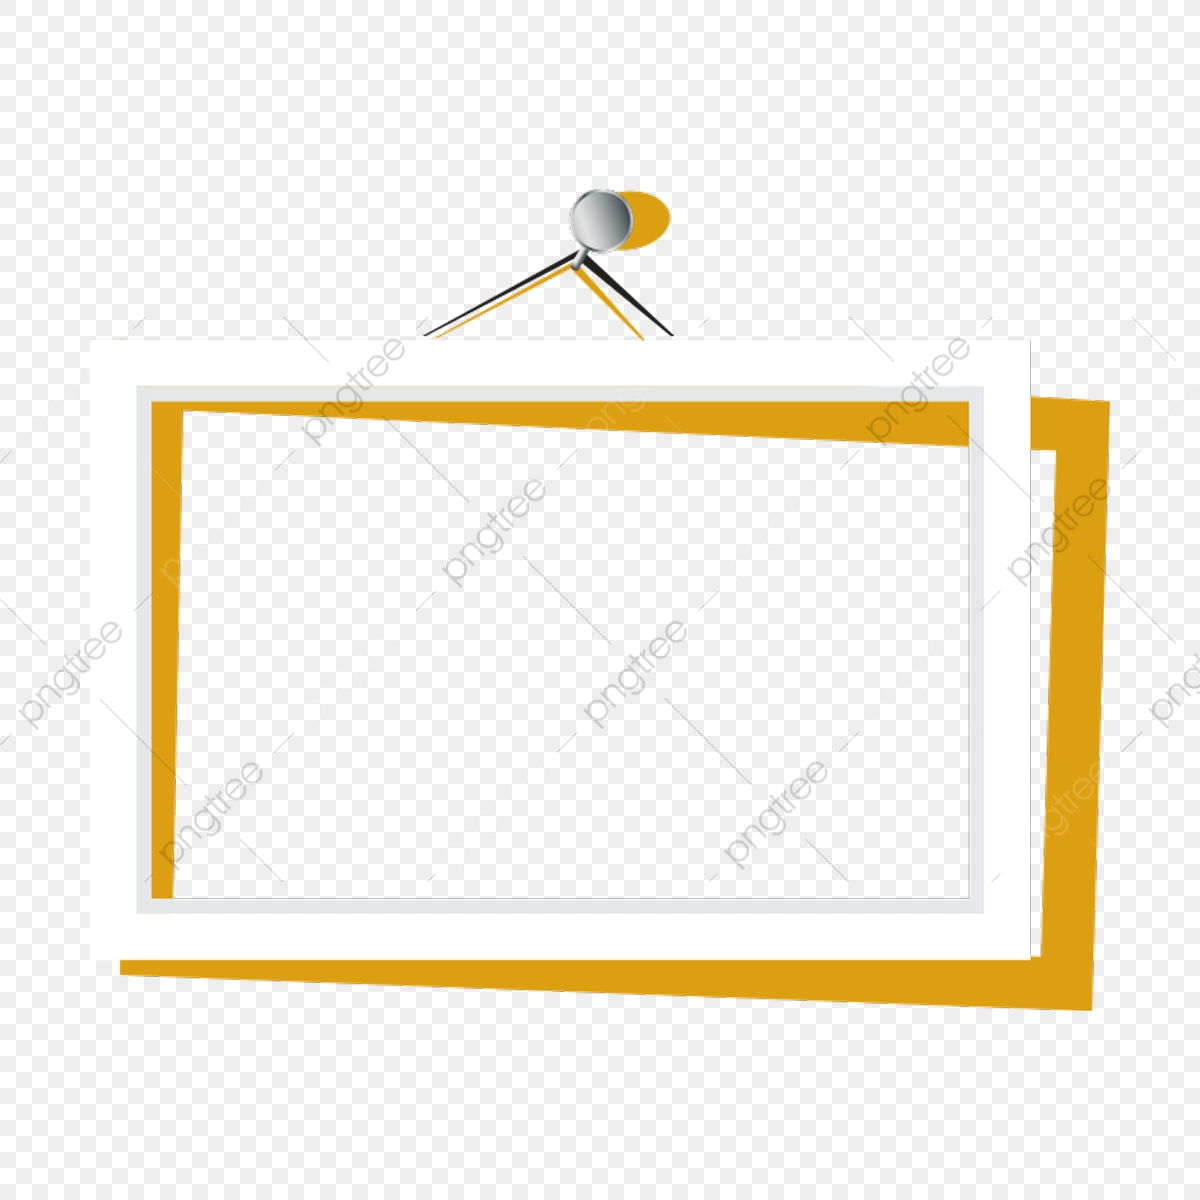 hight resolution of commercial use resource upgrade to premium plan and get license authorization upgradenow hanging picture frame clipart